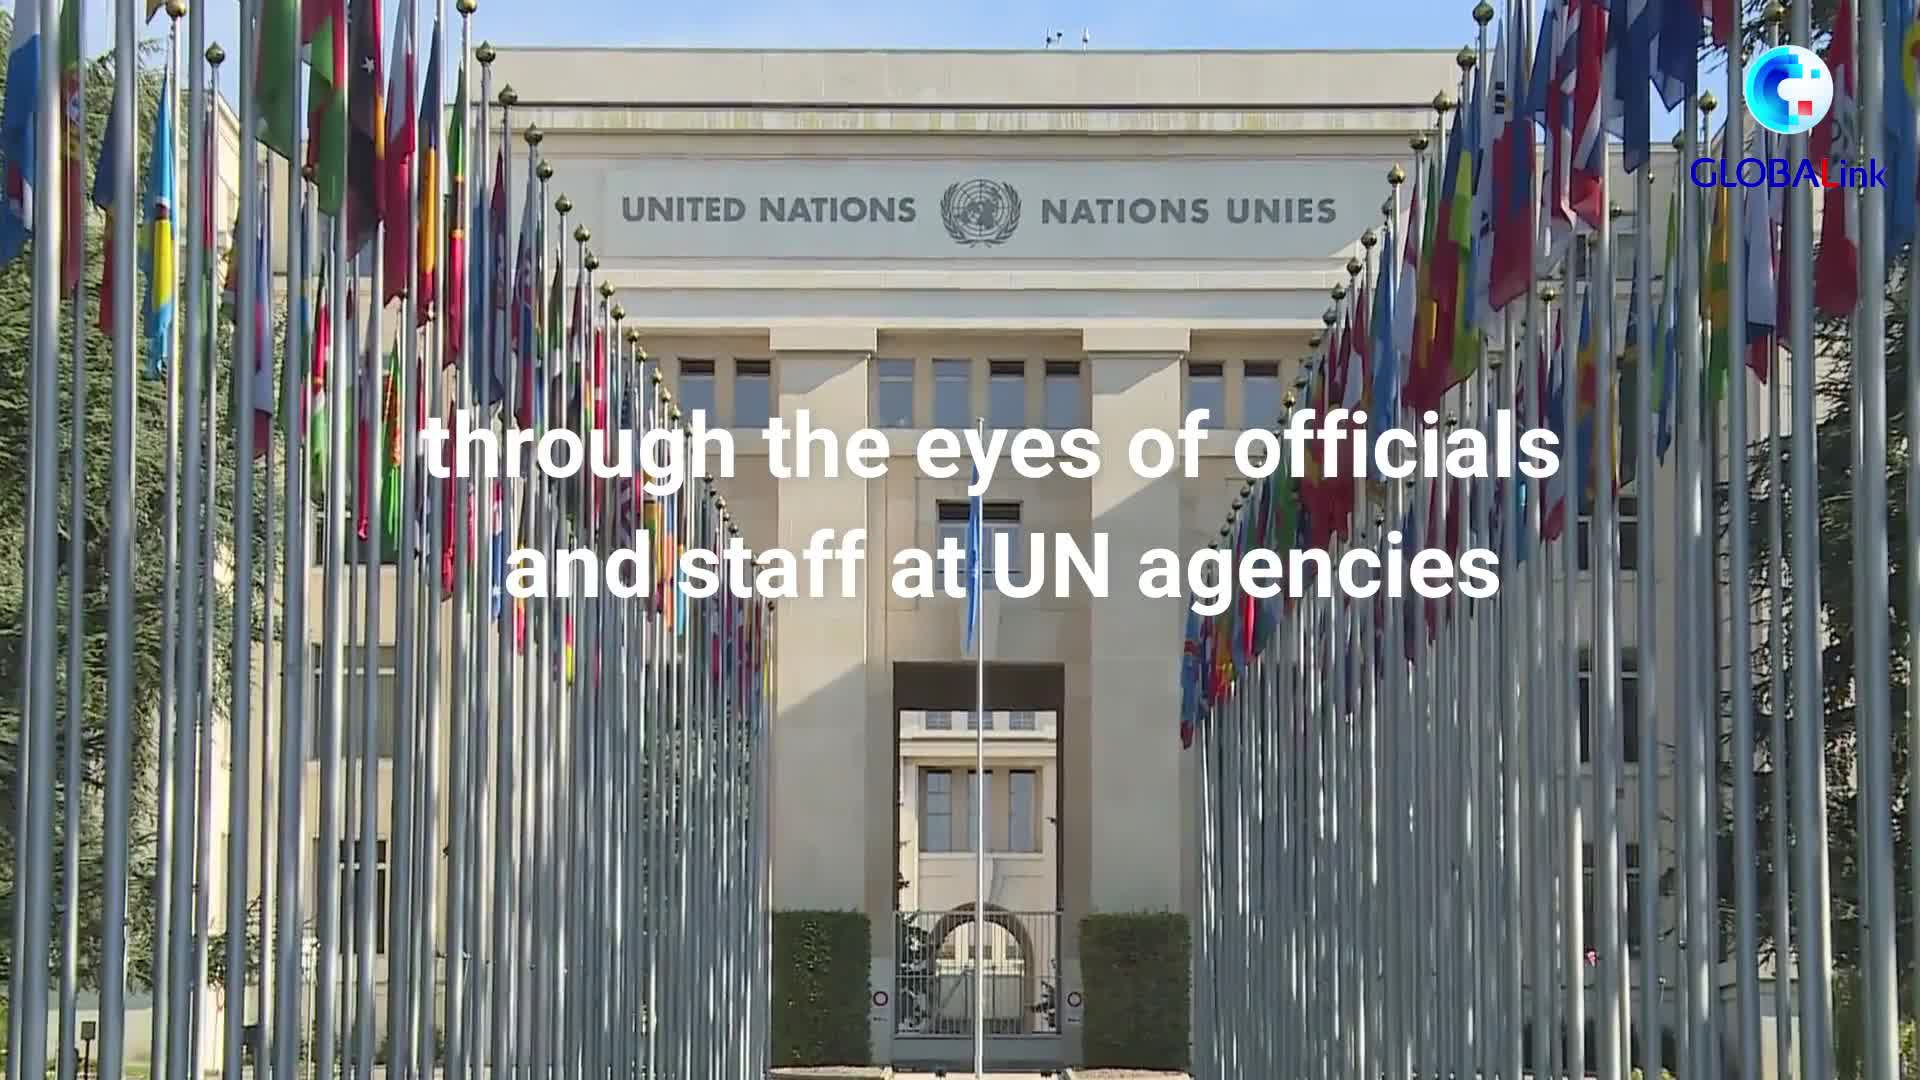 GLOBALink   China's UN contribution in the eyes of UN officials and staff